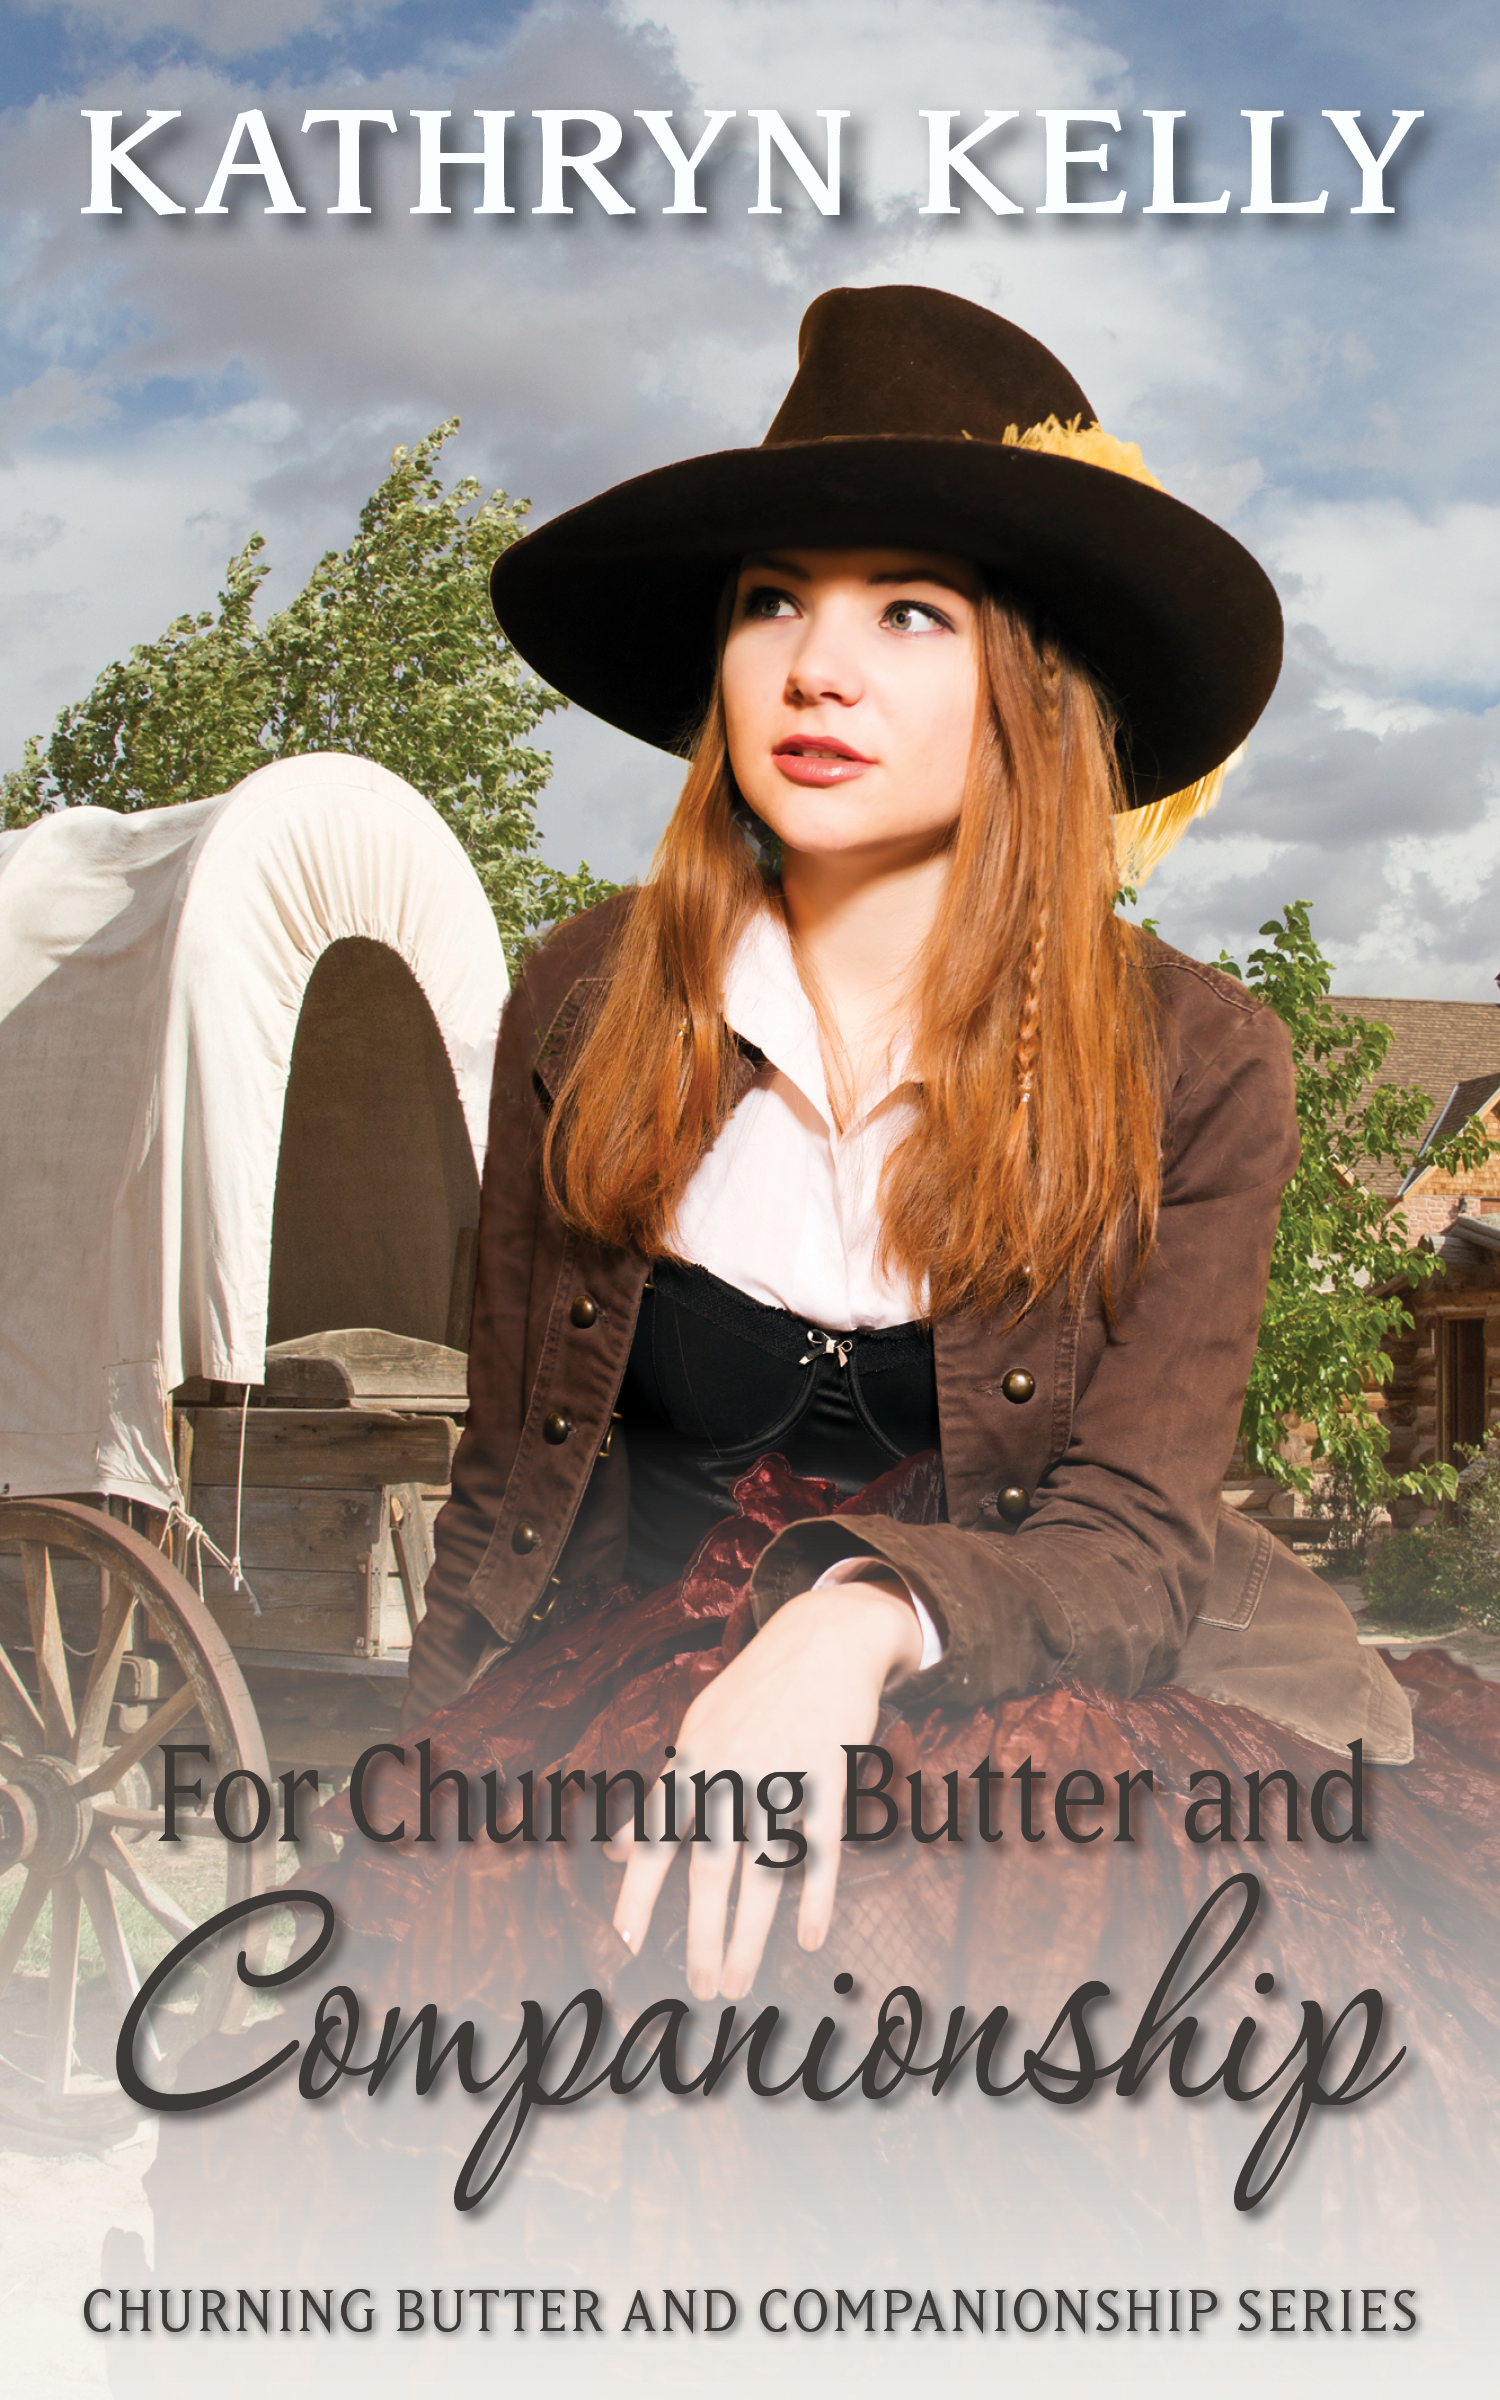 For Churning Butter and Companionship - When Charlotte set off on the western trail with little more than her prized horse, she never expected so much dust.And smoke.As could be expected, things on the trail didn't go as planned.First in a new series. If you like Kathryn Kelly's Civil War series, follow her into the untamed west.